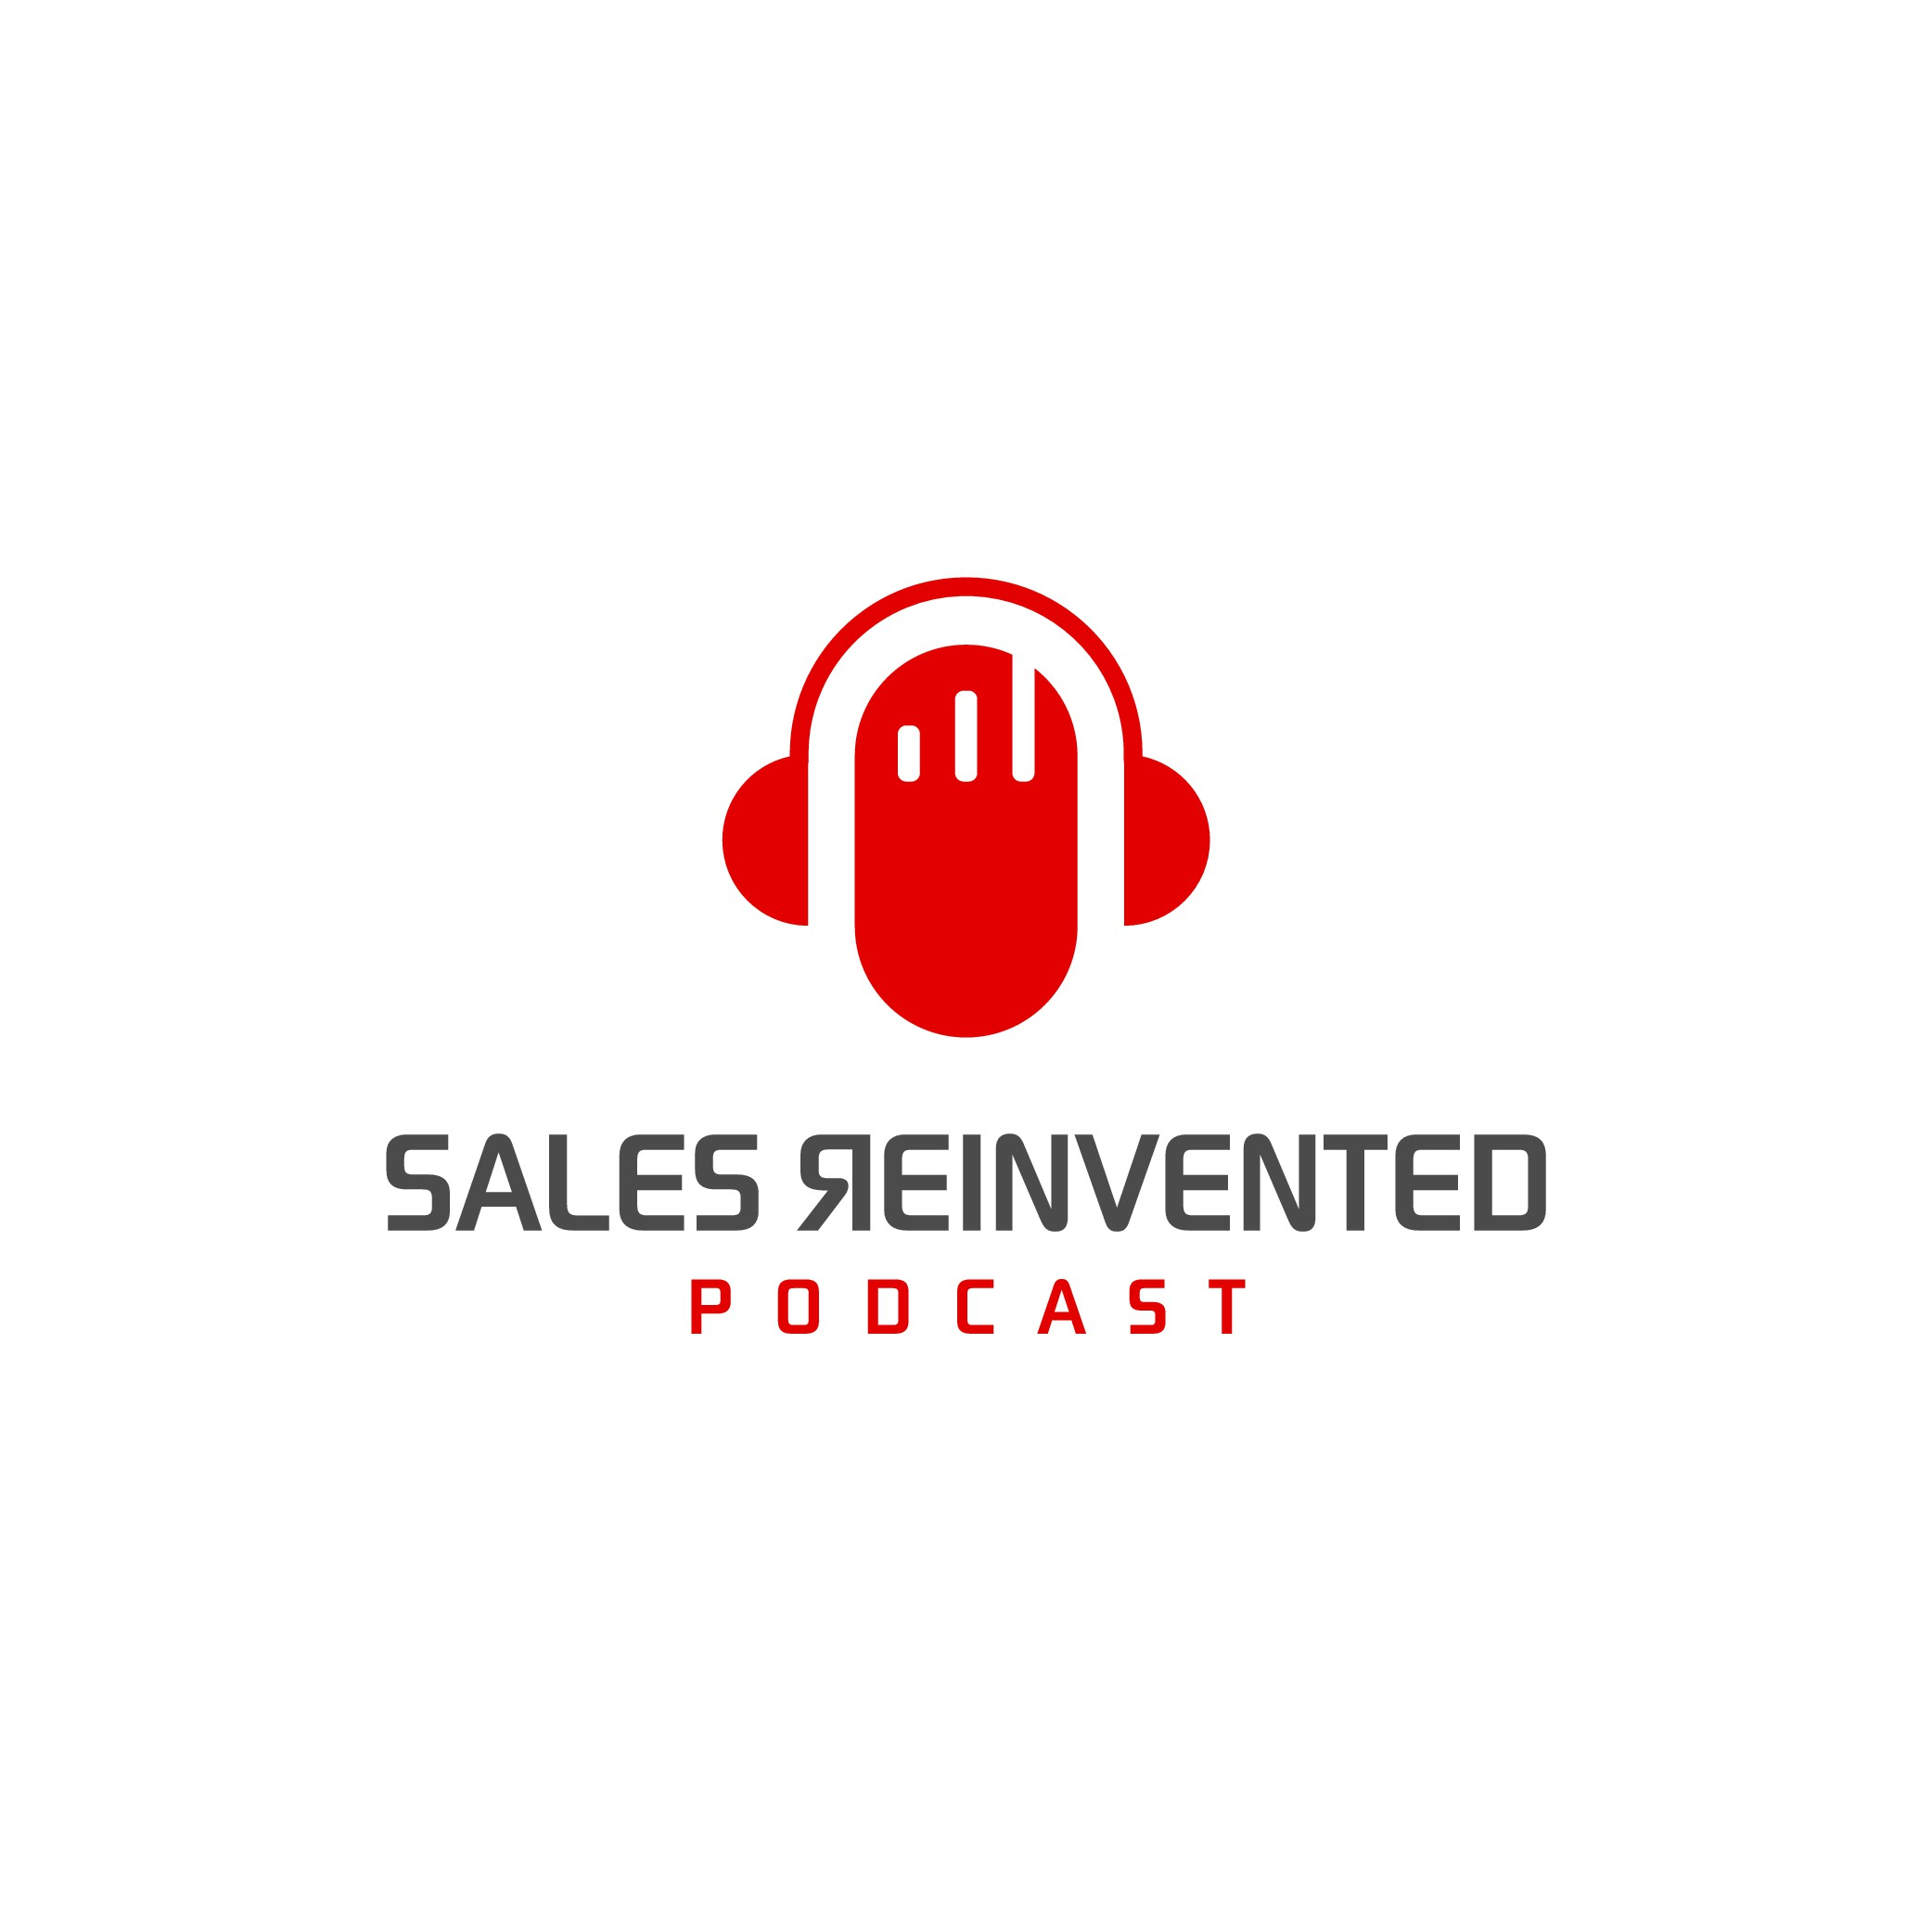 Sales Reinvented Podcast Launching Soon